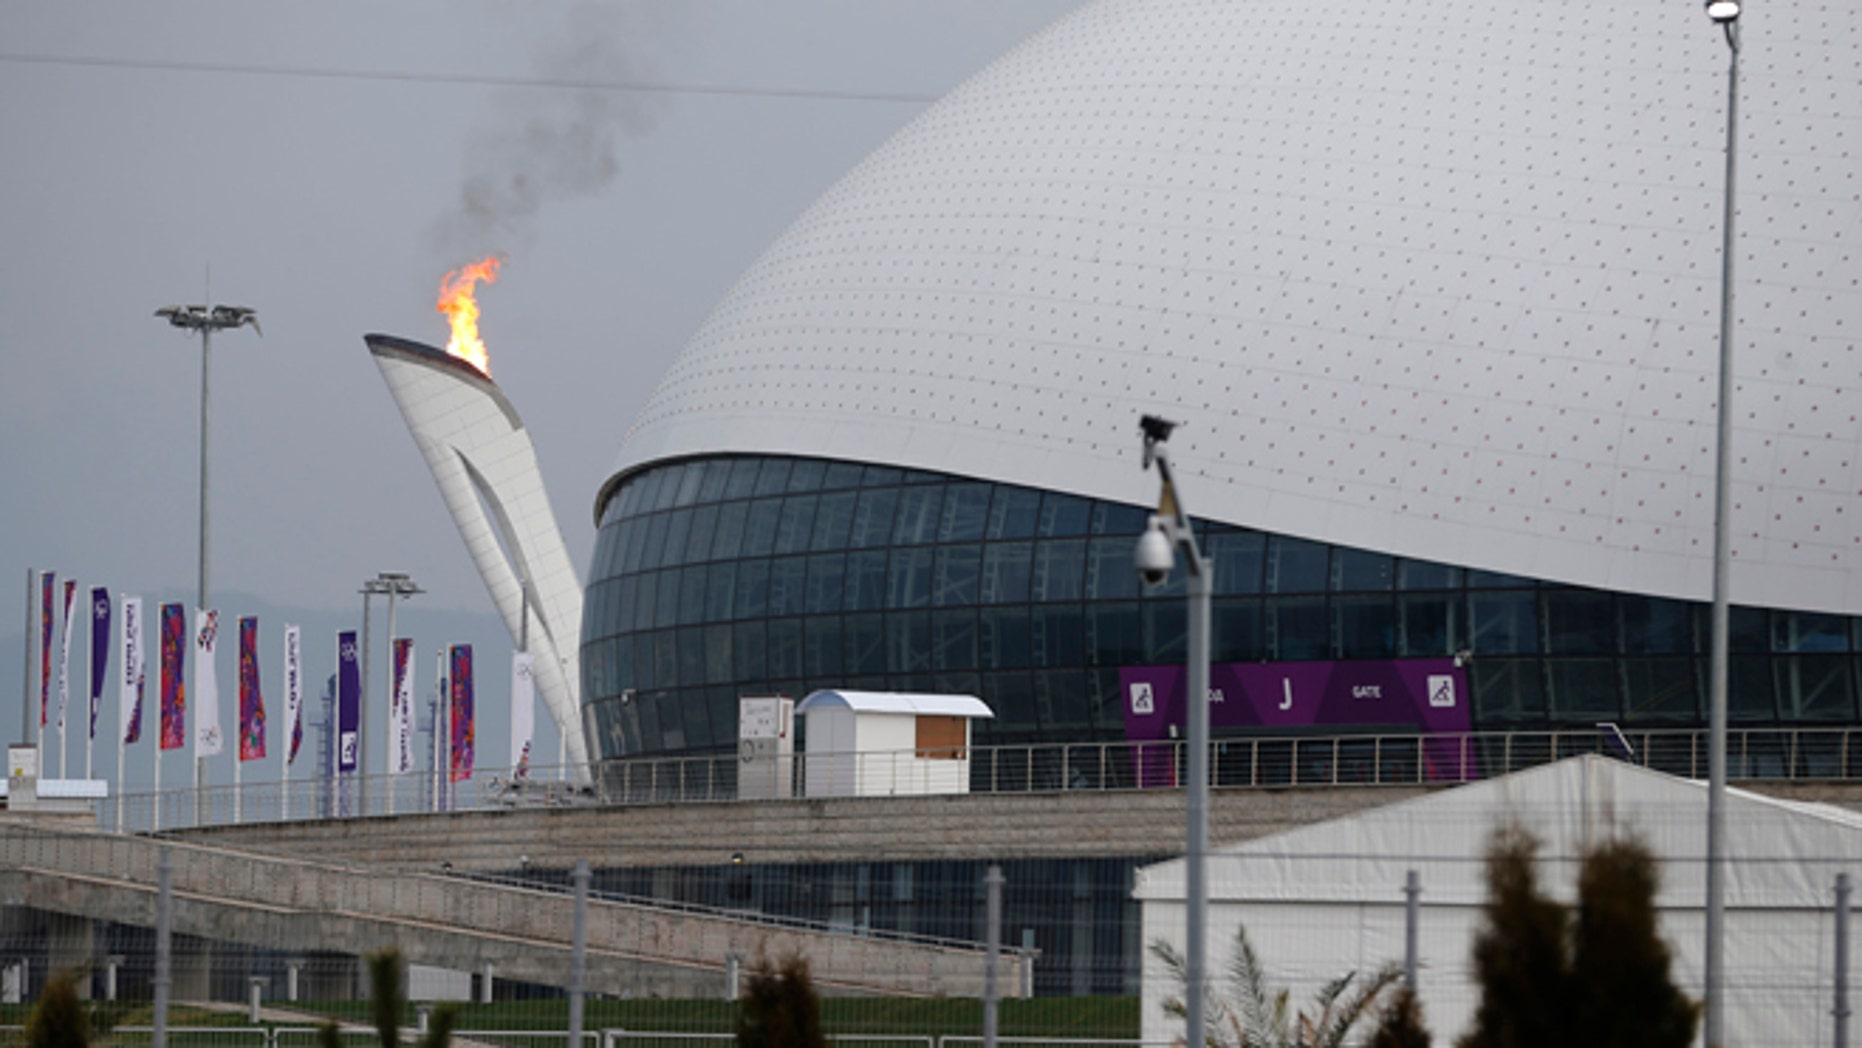 Jan. 29, 2014: The Olympic flame is lit during a test next to the Bolshoy Ice Dome before the start of the 2014 Winter Olympics in Sochi, Russia.